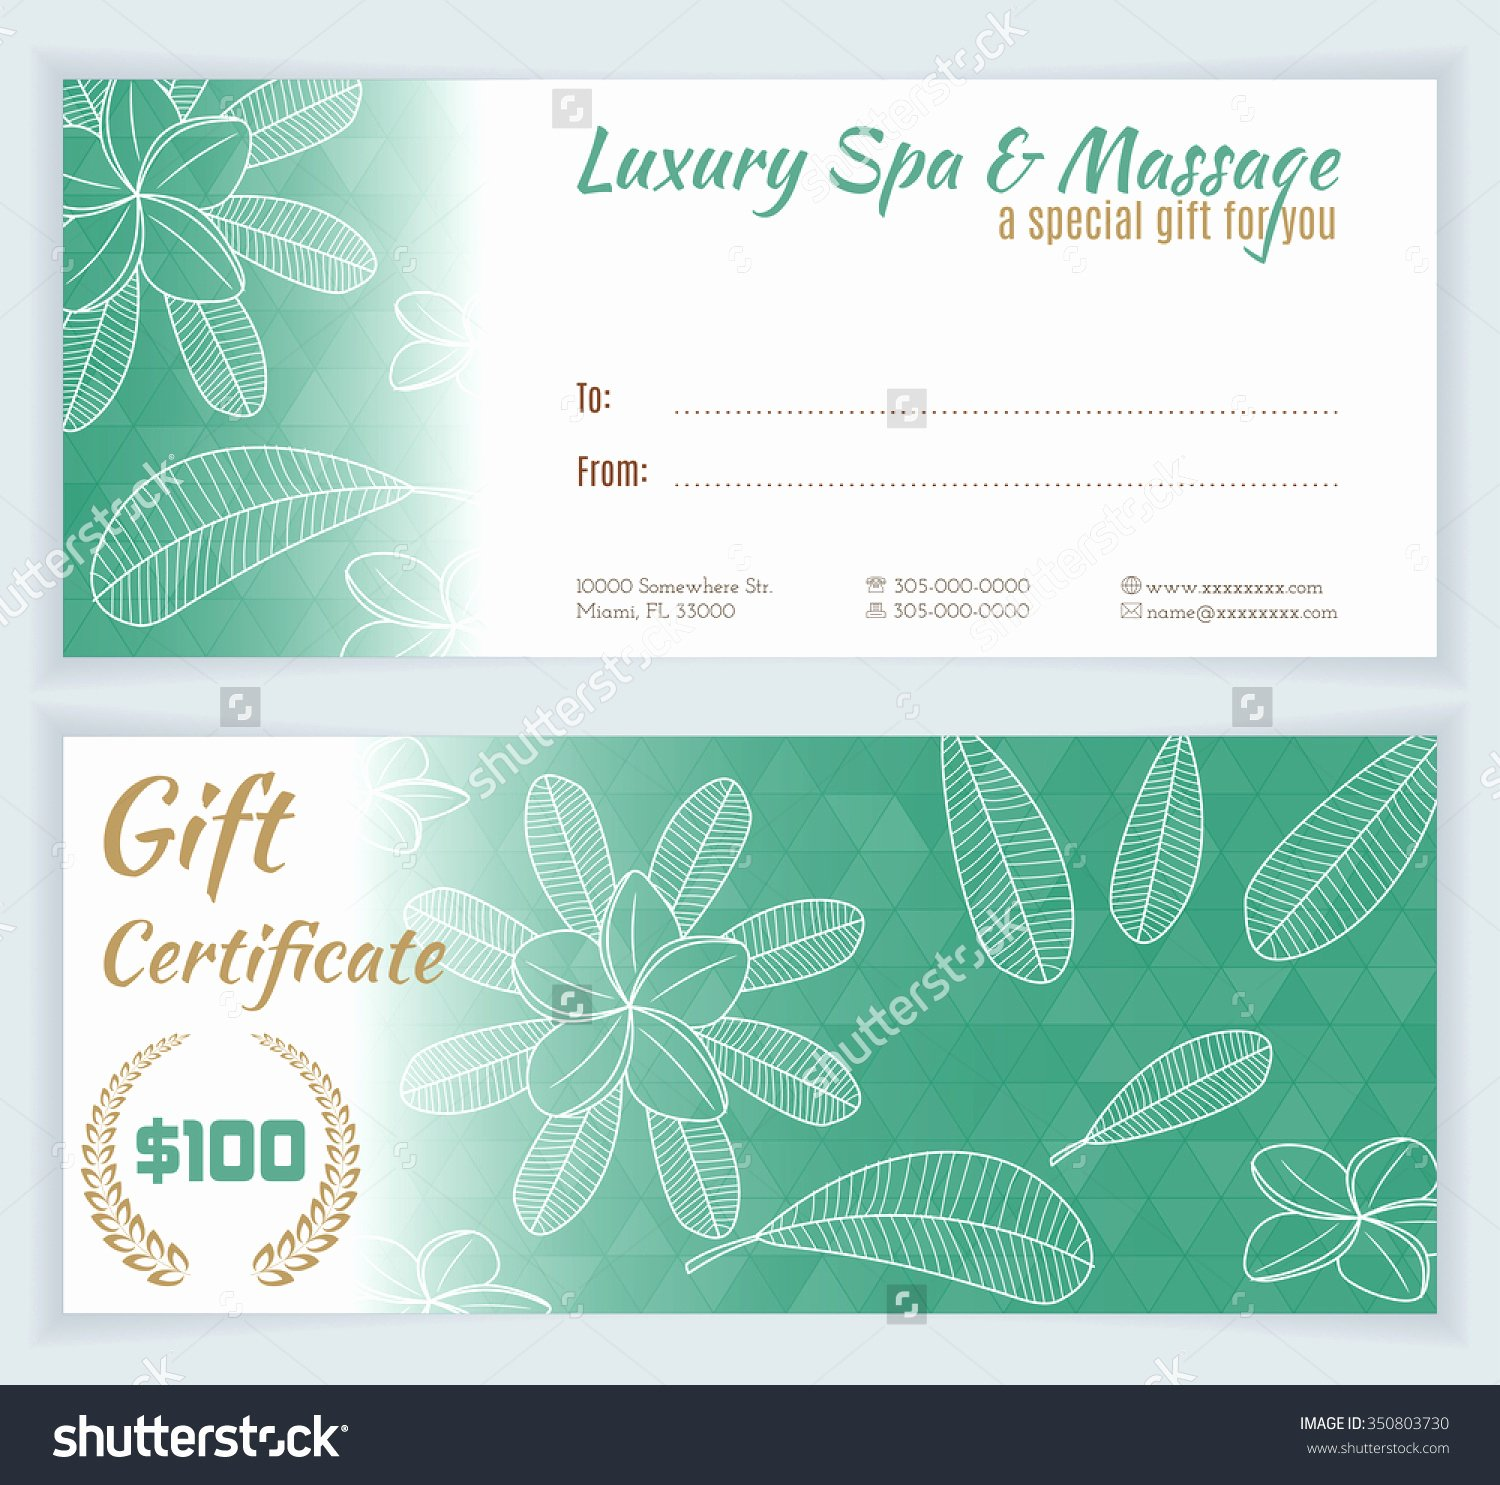 Lu La Roe Gift Card Design Templates